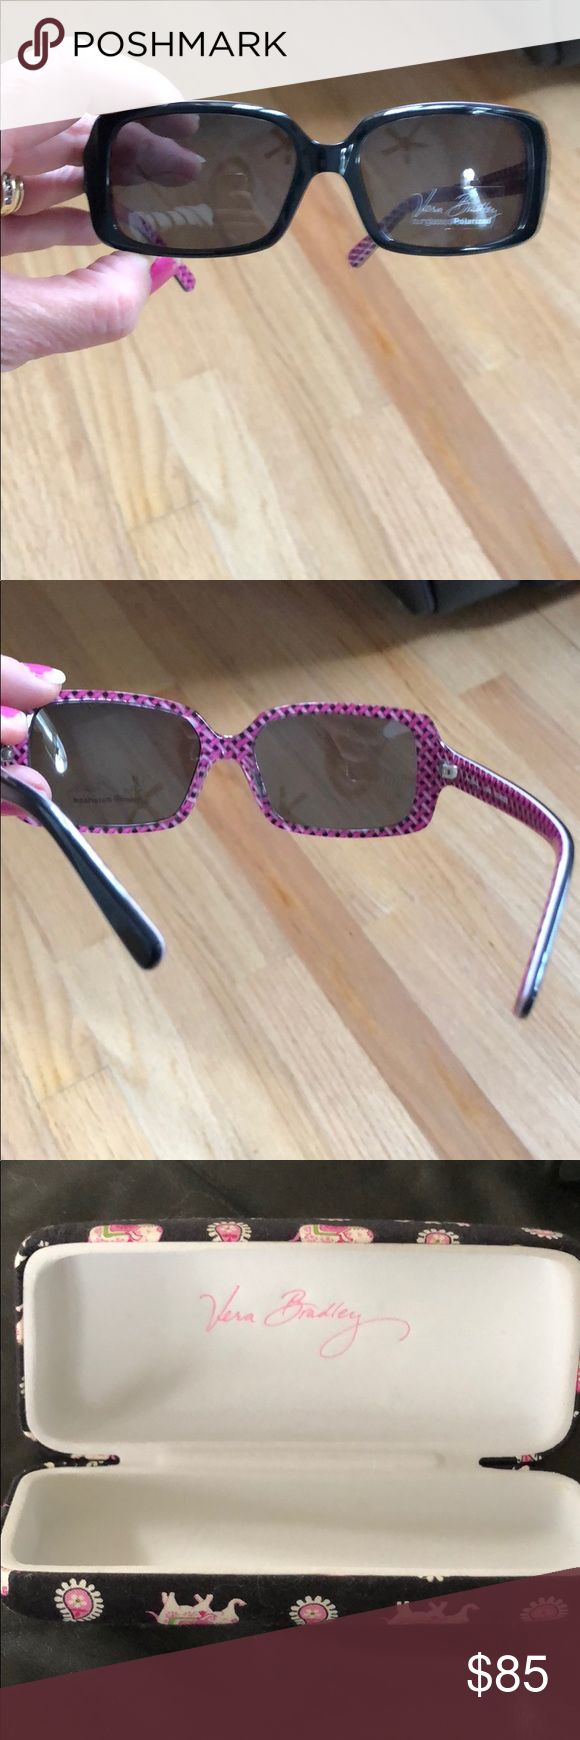 Vera Bradley Sunglasses Brand New never worn Vera Bradley Sunglasses with matching case. Only out of the plastic for these pictures. Vera Bradley Accessories Sunglasses